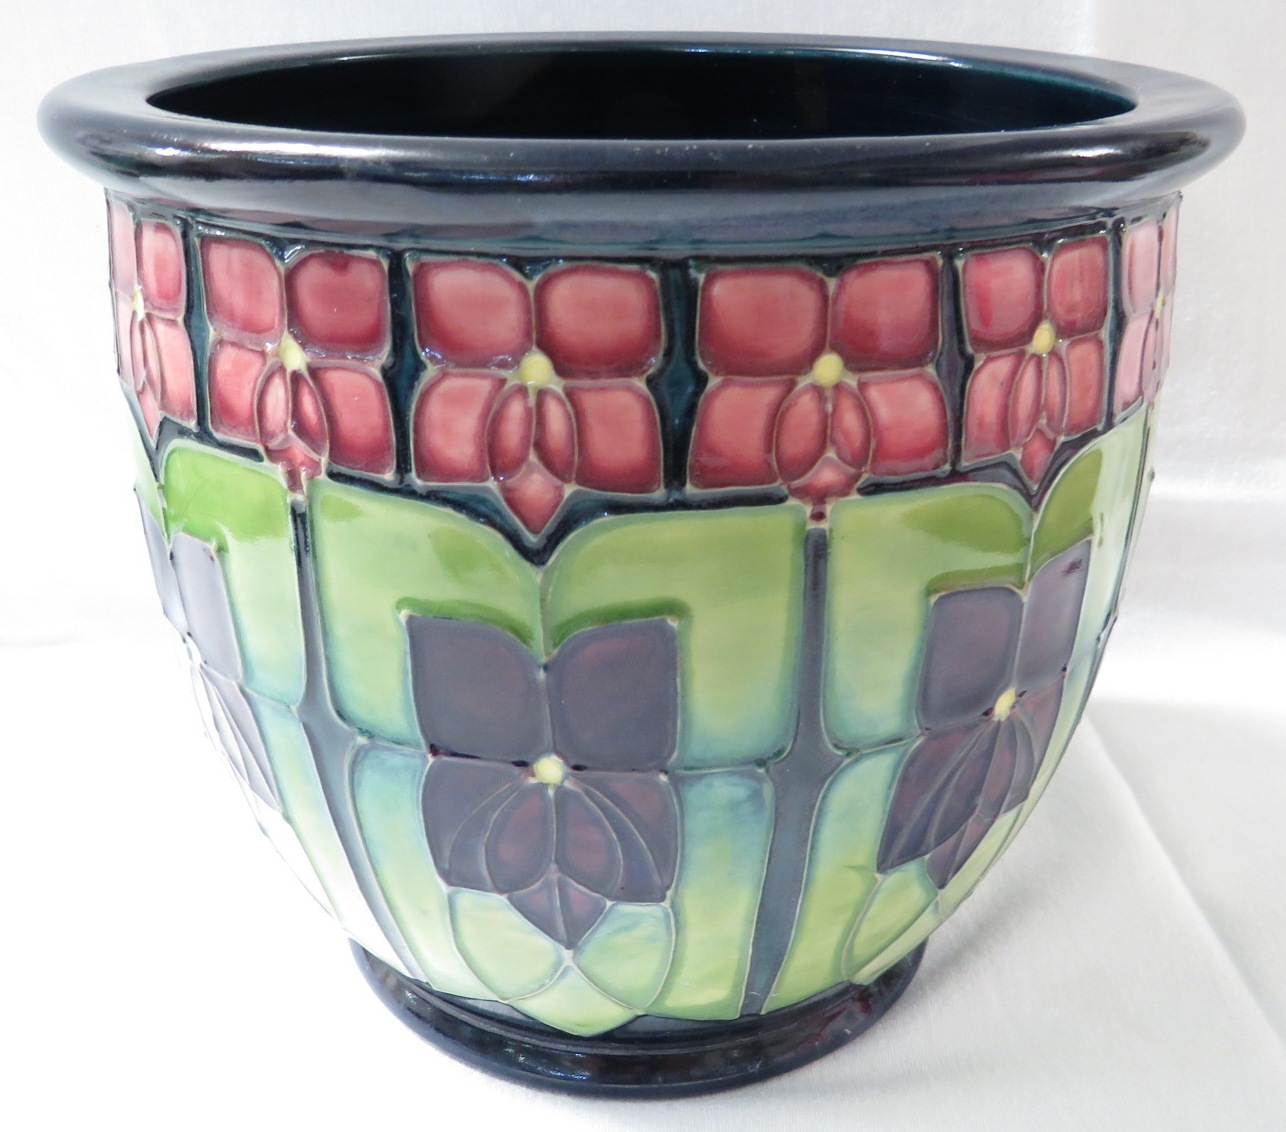 Lot 2 - Moorcroft pottery planter, dark blue green with a repeating decoration in the Art Nouveau manner,